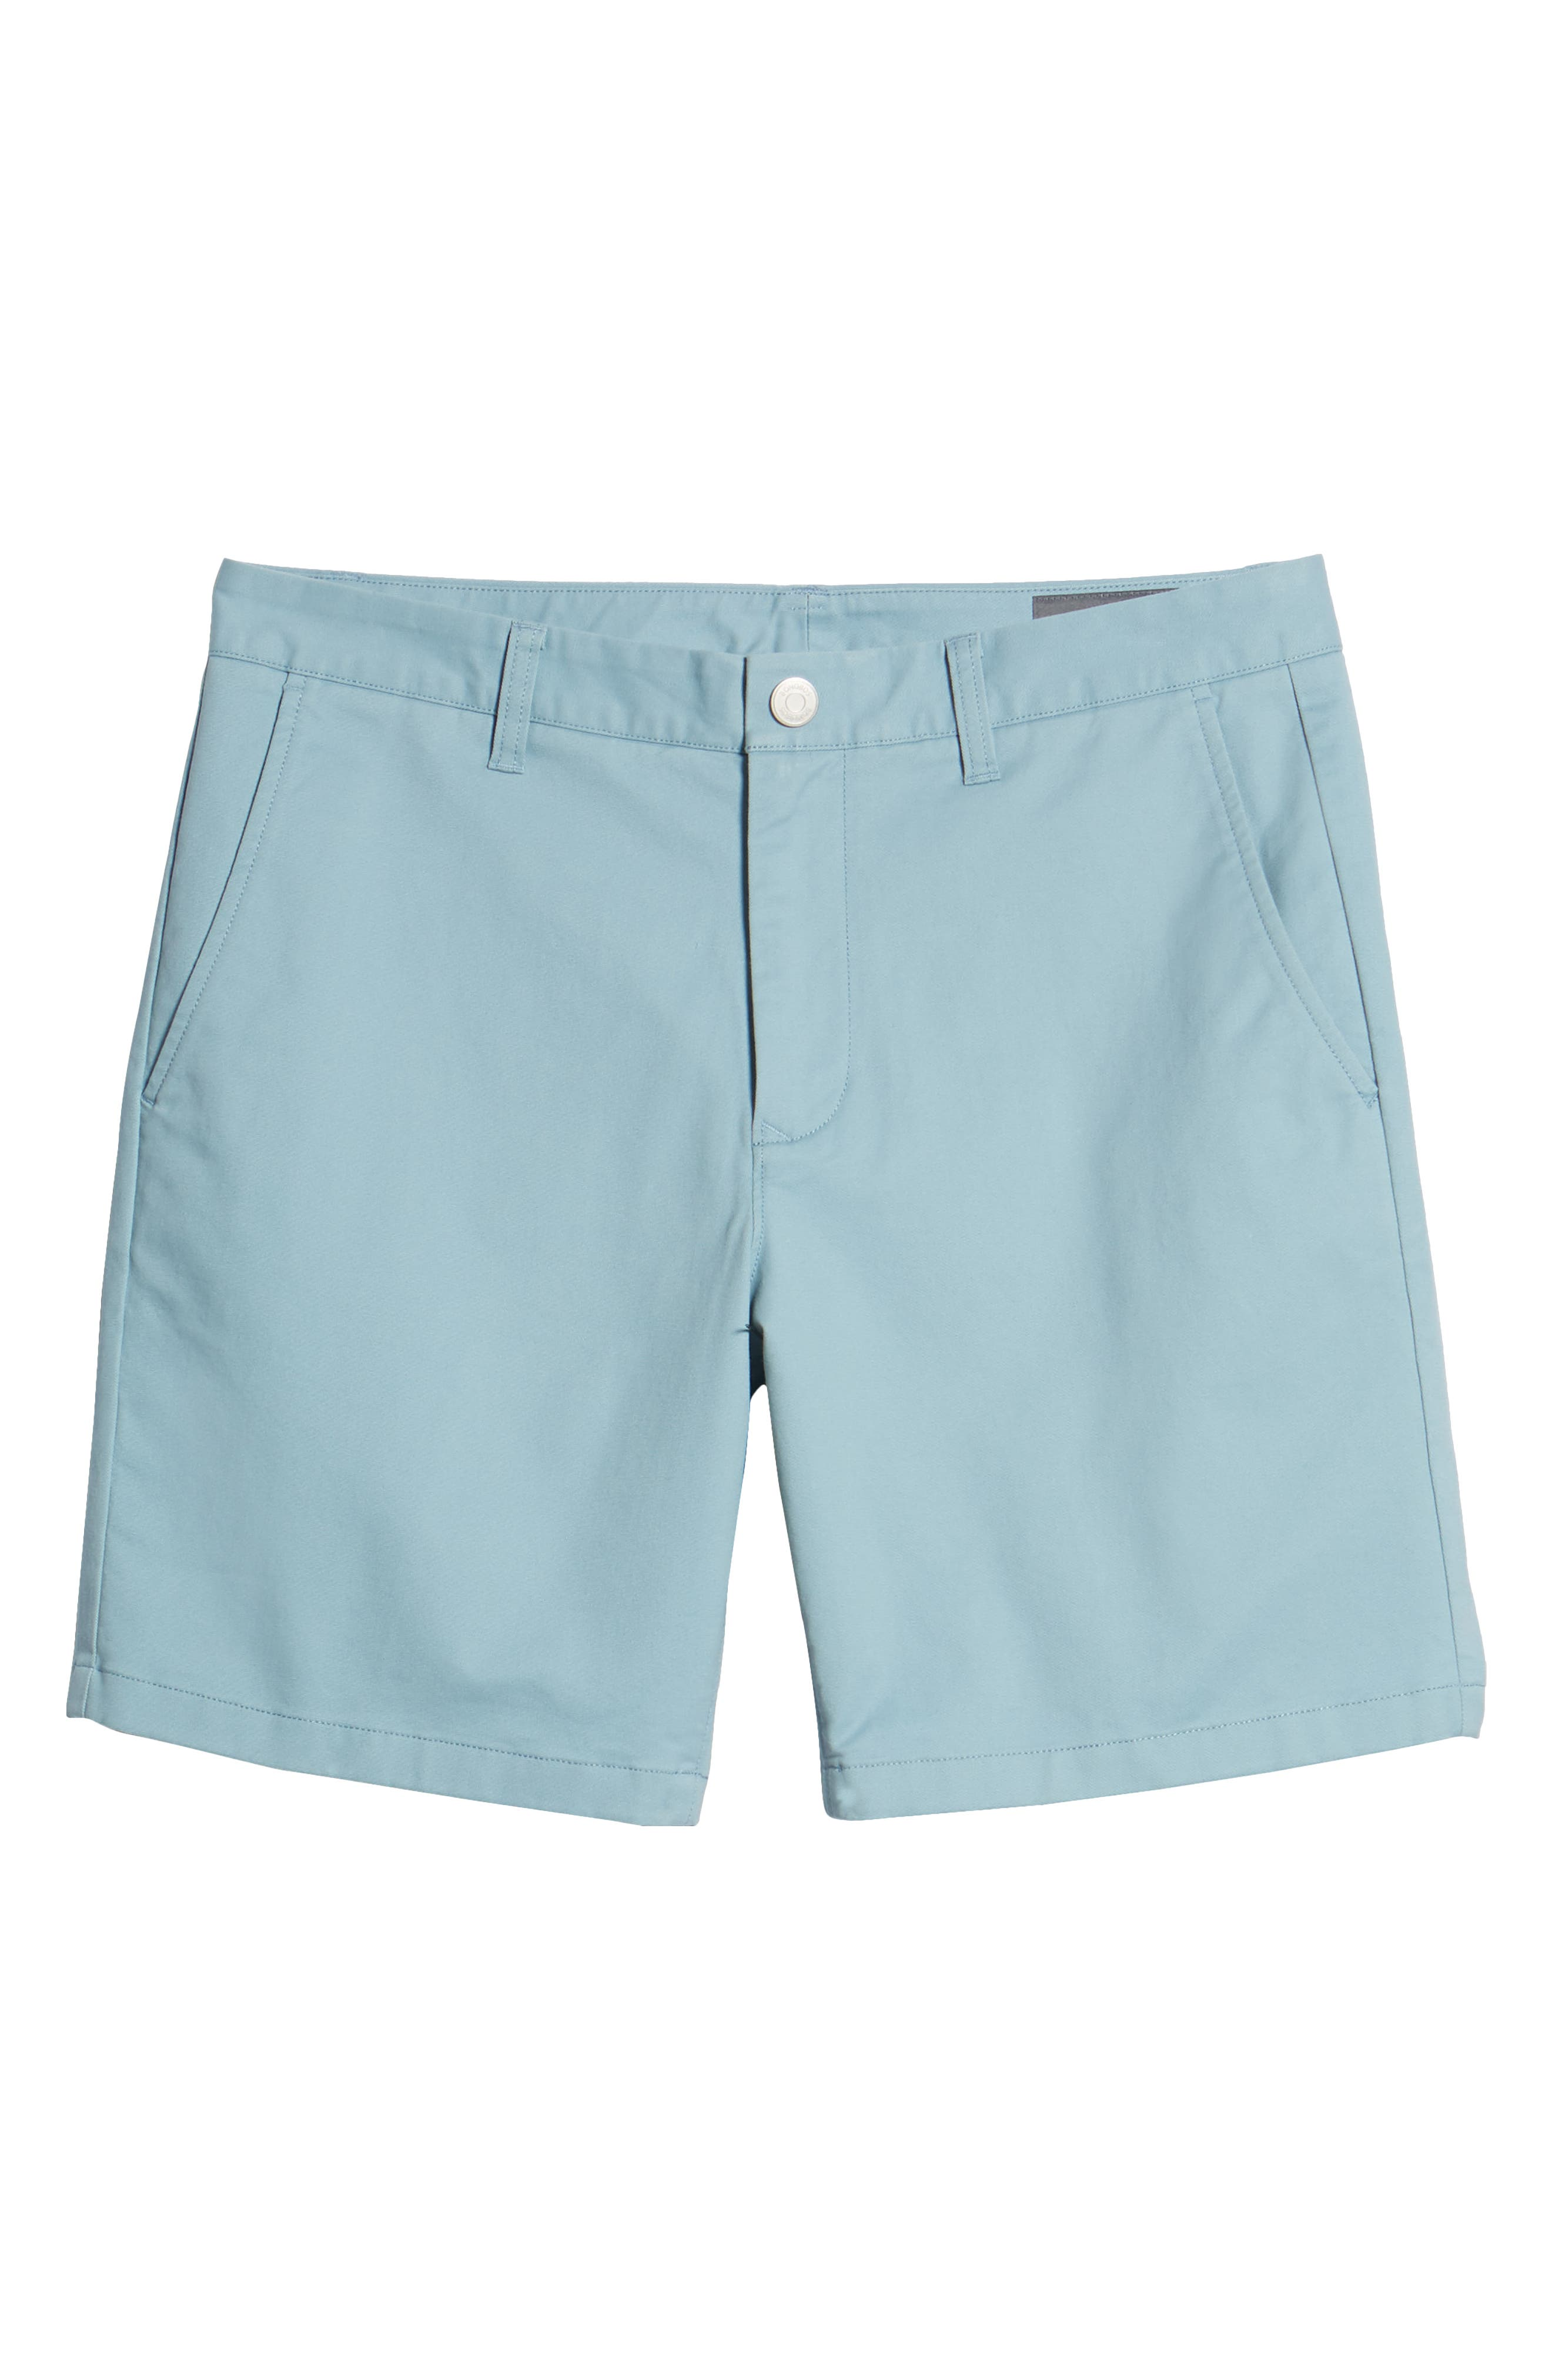 Stretch Chino 7-Inch Shorts,                             Alternate thumbnail 71, color,